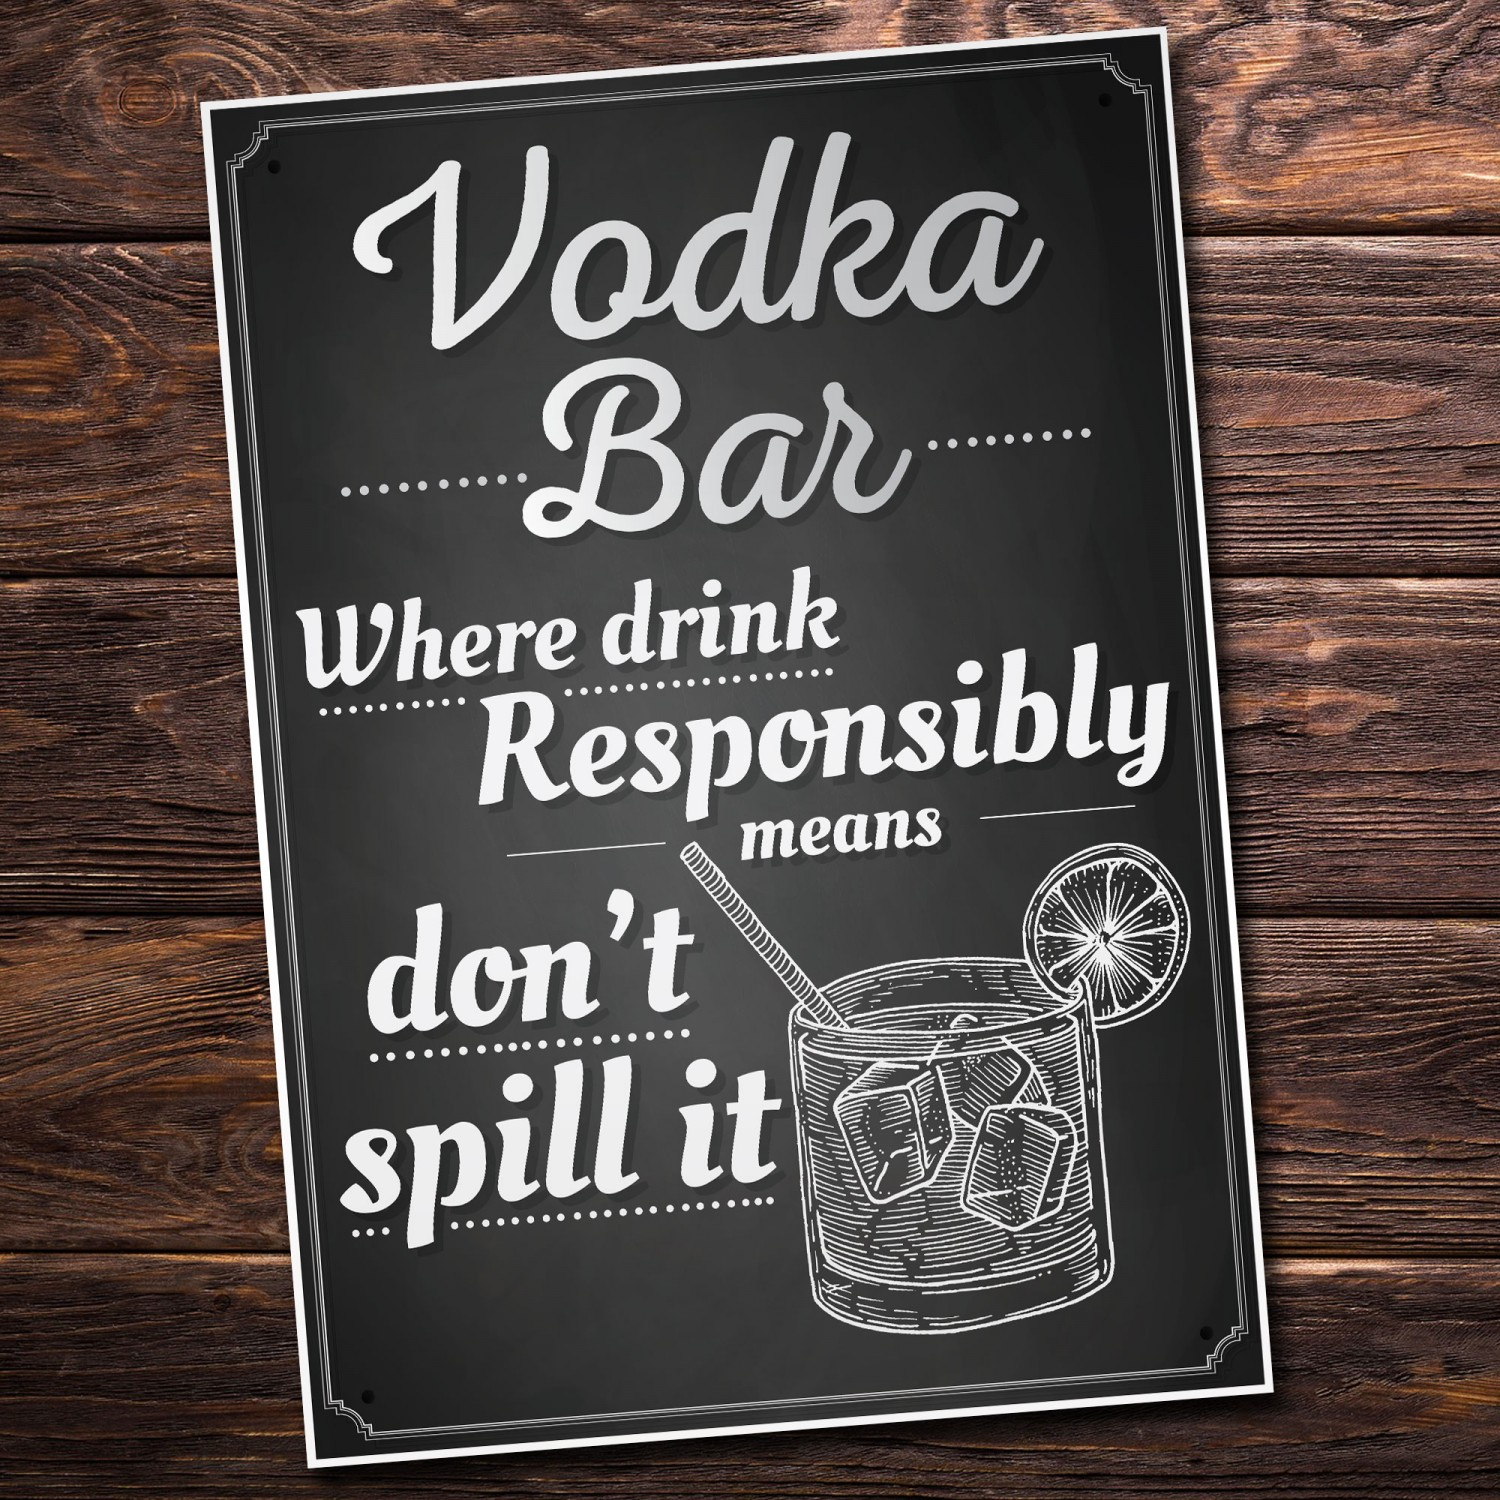 Vodka Bar Hanging Plaque Alcohol Party Birthday Gift Garden Pub